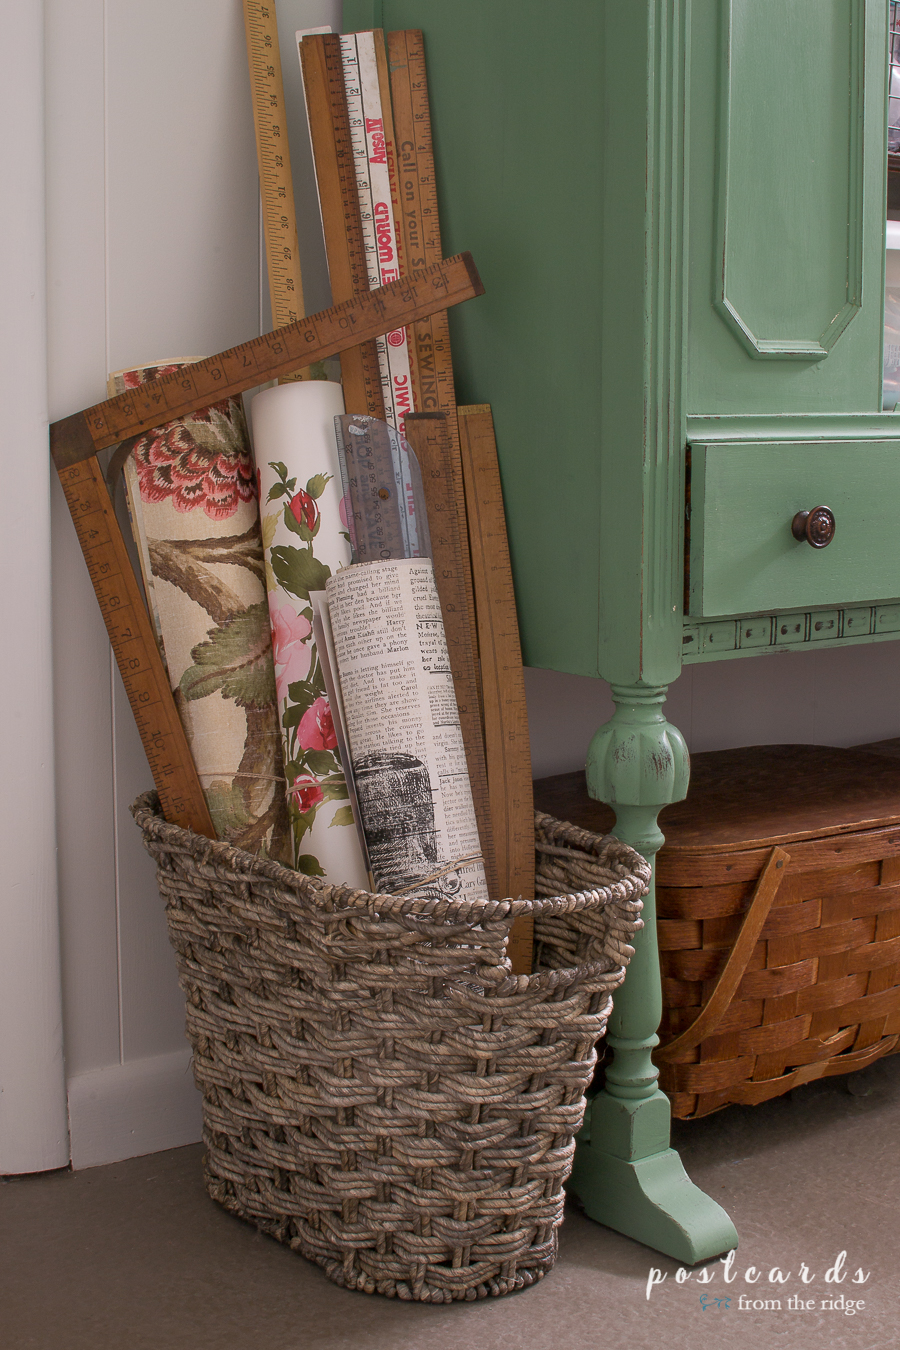 Vintage yardsticks and wallpaper pages in a woven basket